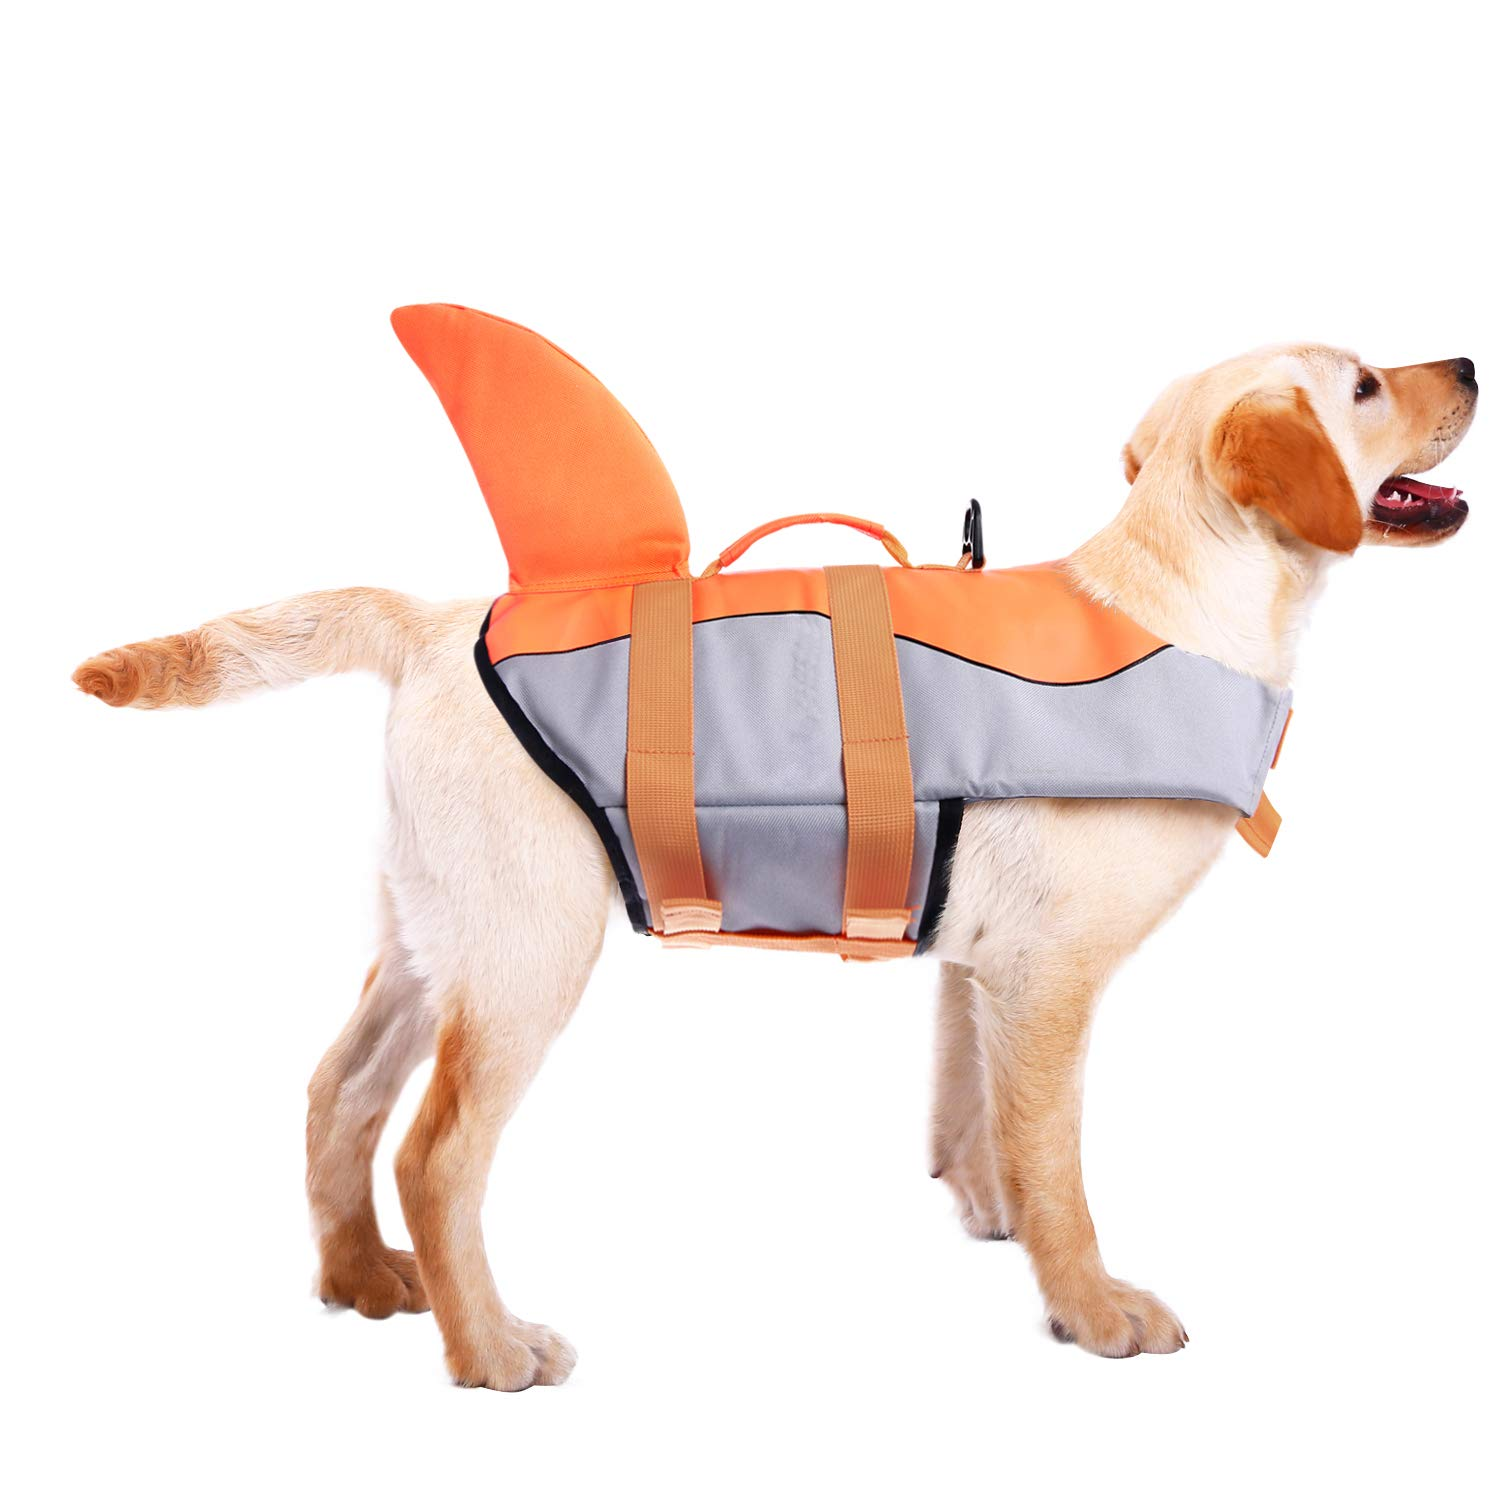 ASENKU Dog Life Jacket Ripstop Pet Floatation Vest Saver Swimsuit Preserver for Water Safety at The Pool, Beach, Boating by ASENKU